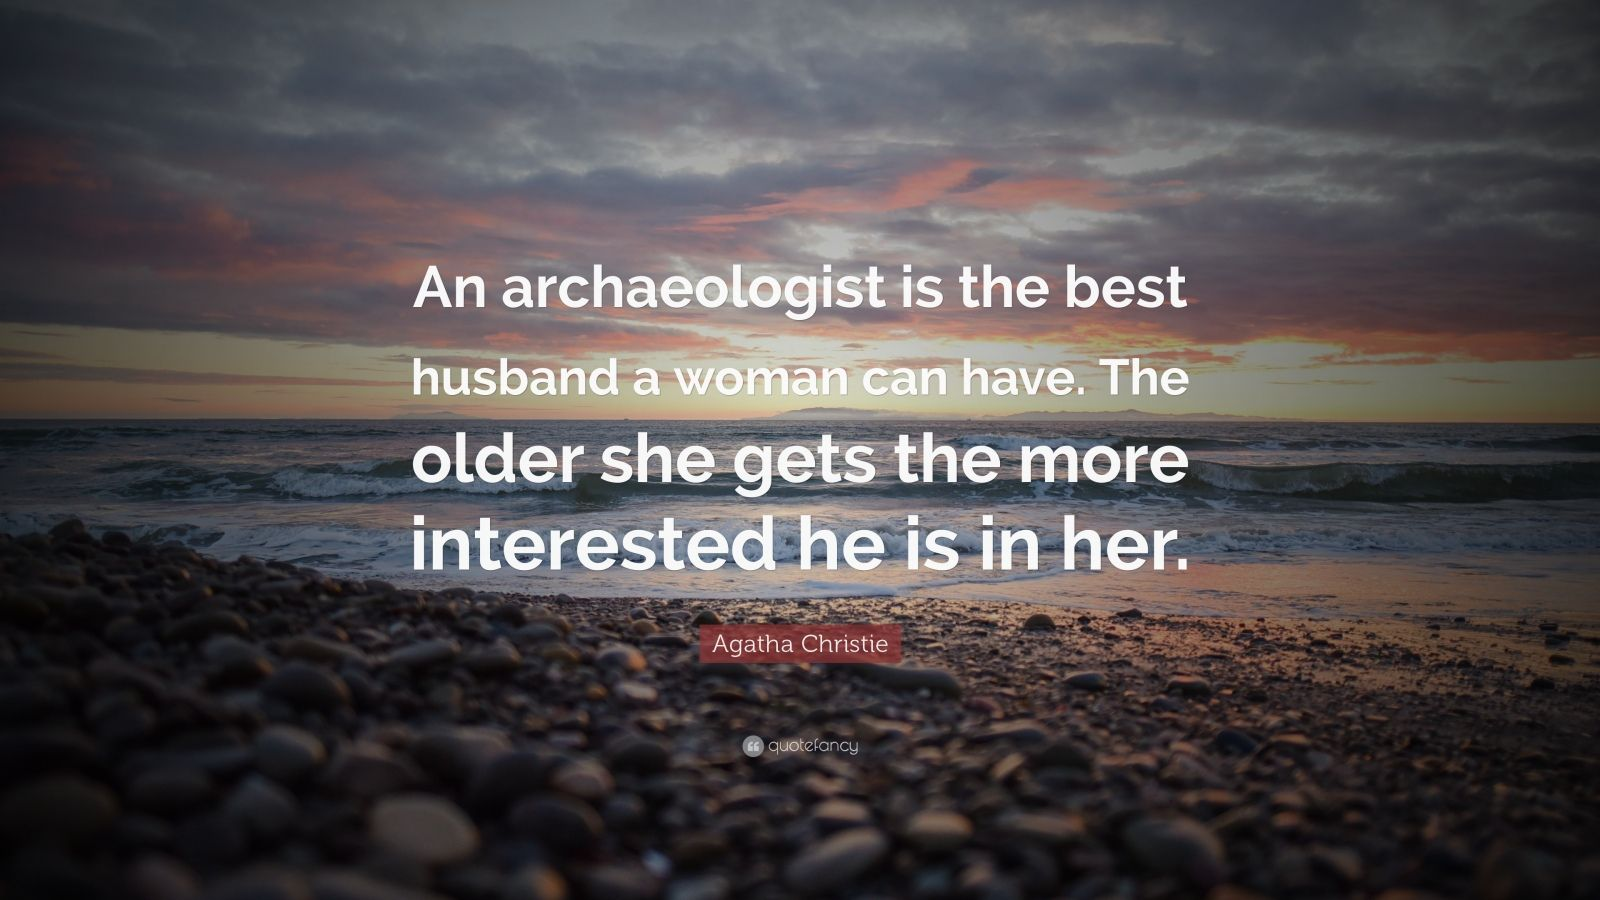 """Agatha Christie Quote: """"An archaeologist is the best husband a woman can have. The older she gets the more interested he is in her."""""""